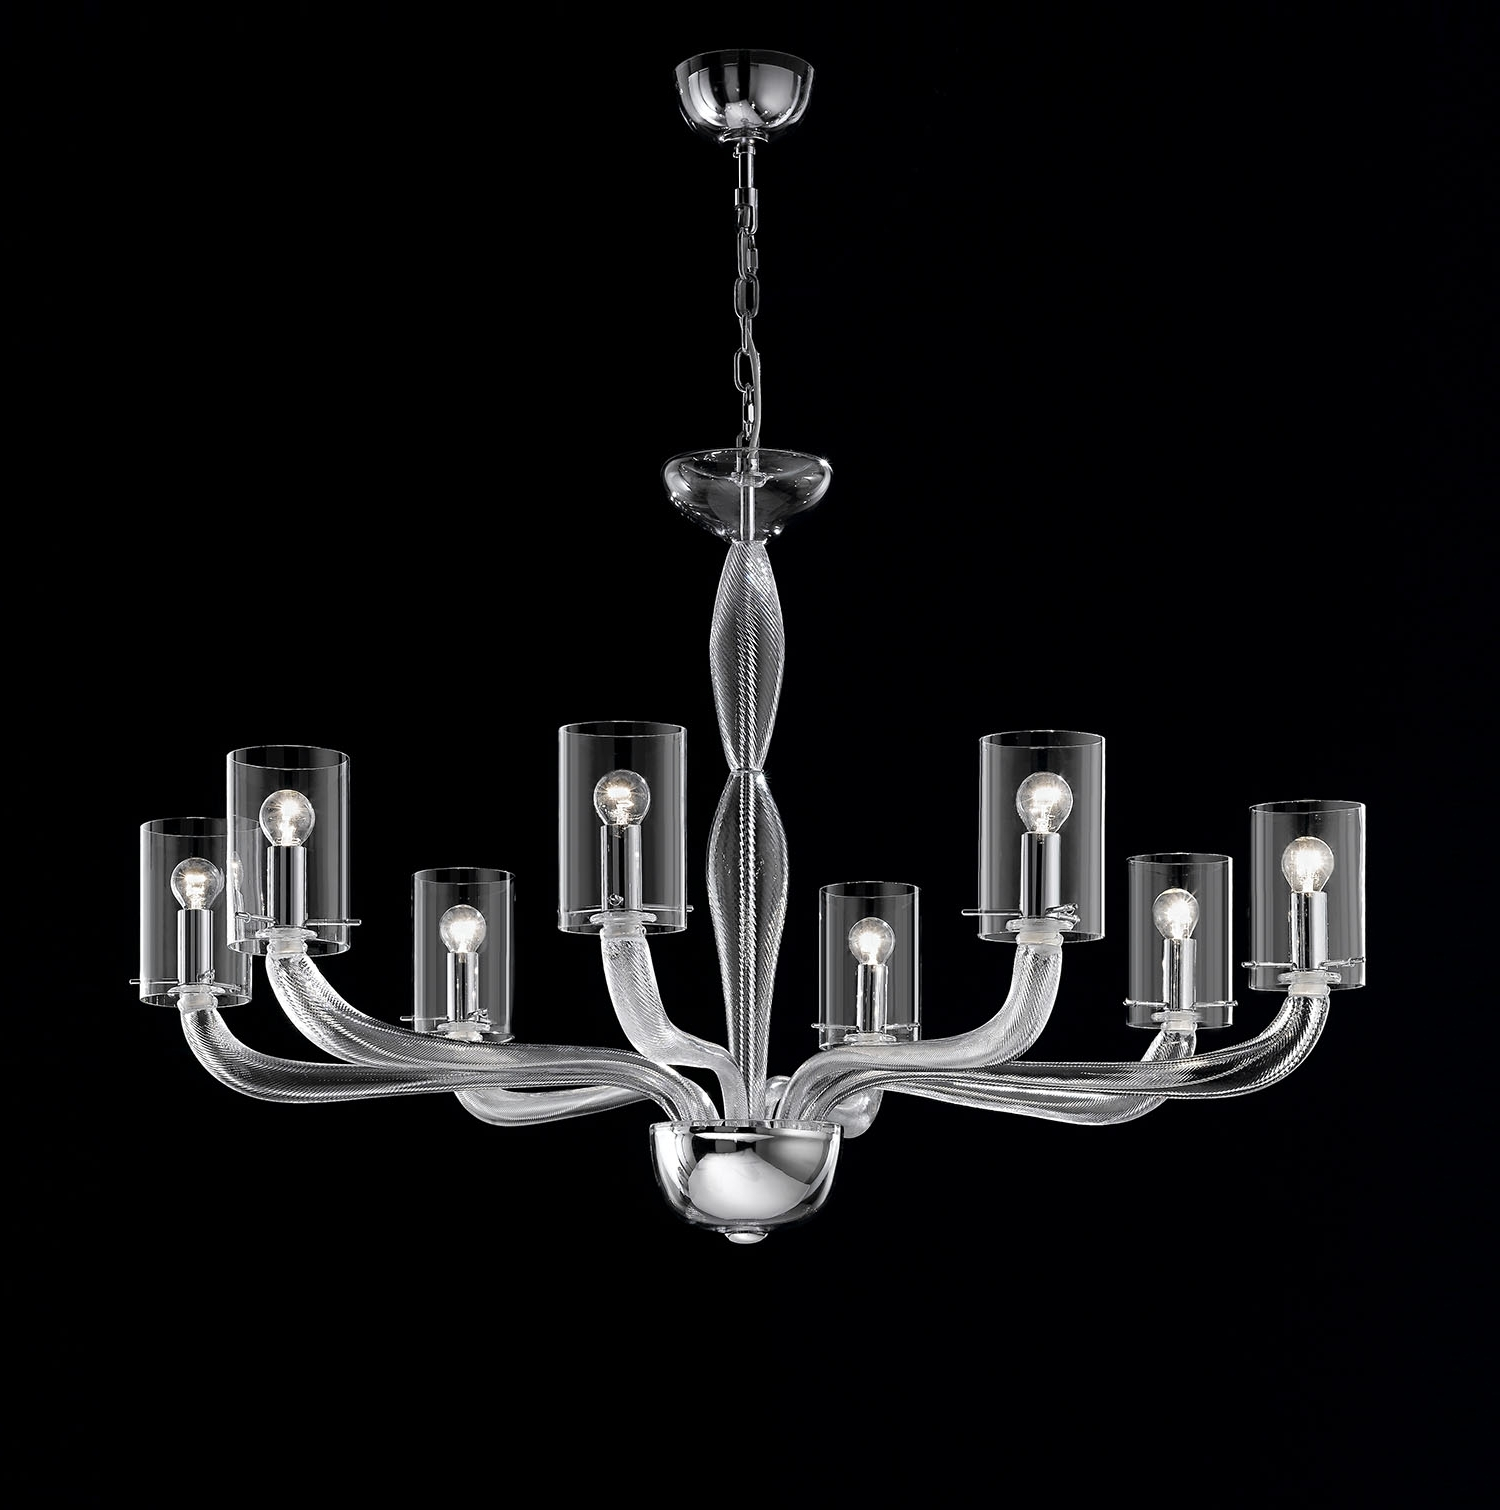 Newest Light : Modern Glass Chandelier Lighting Beautiful Italian Inside Modern Glass Chandeliers (View 13 of 20)